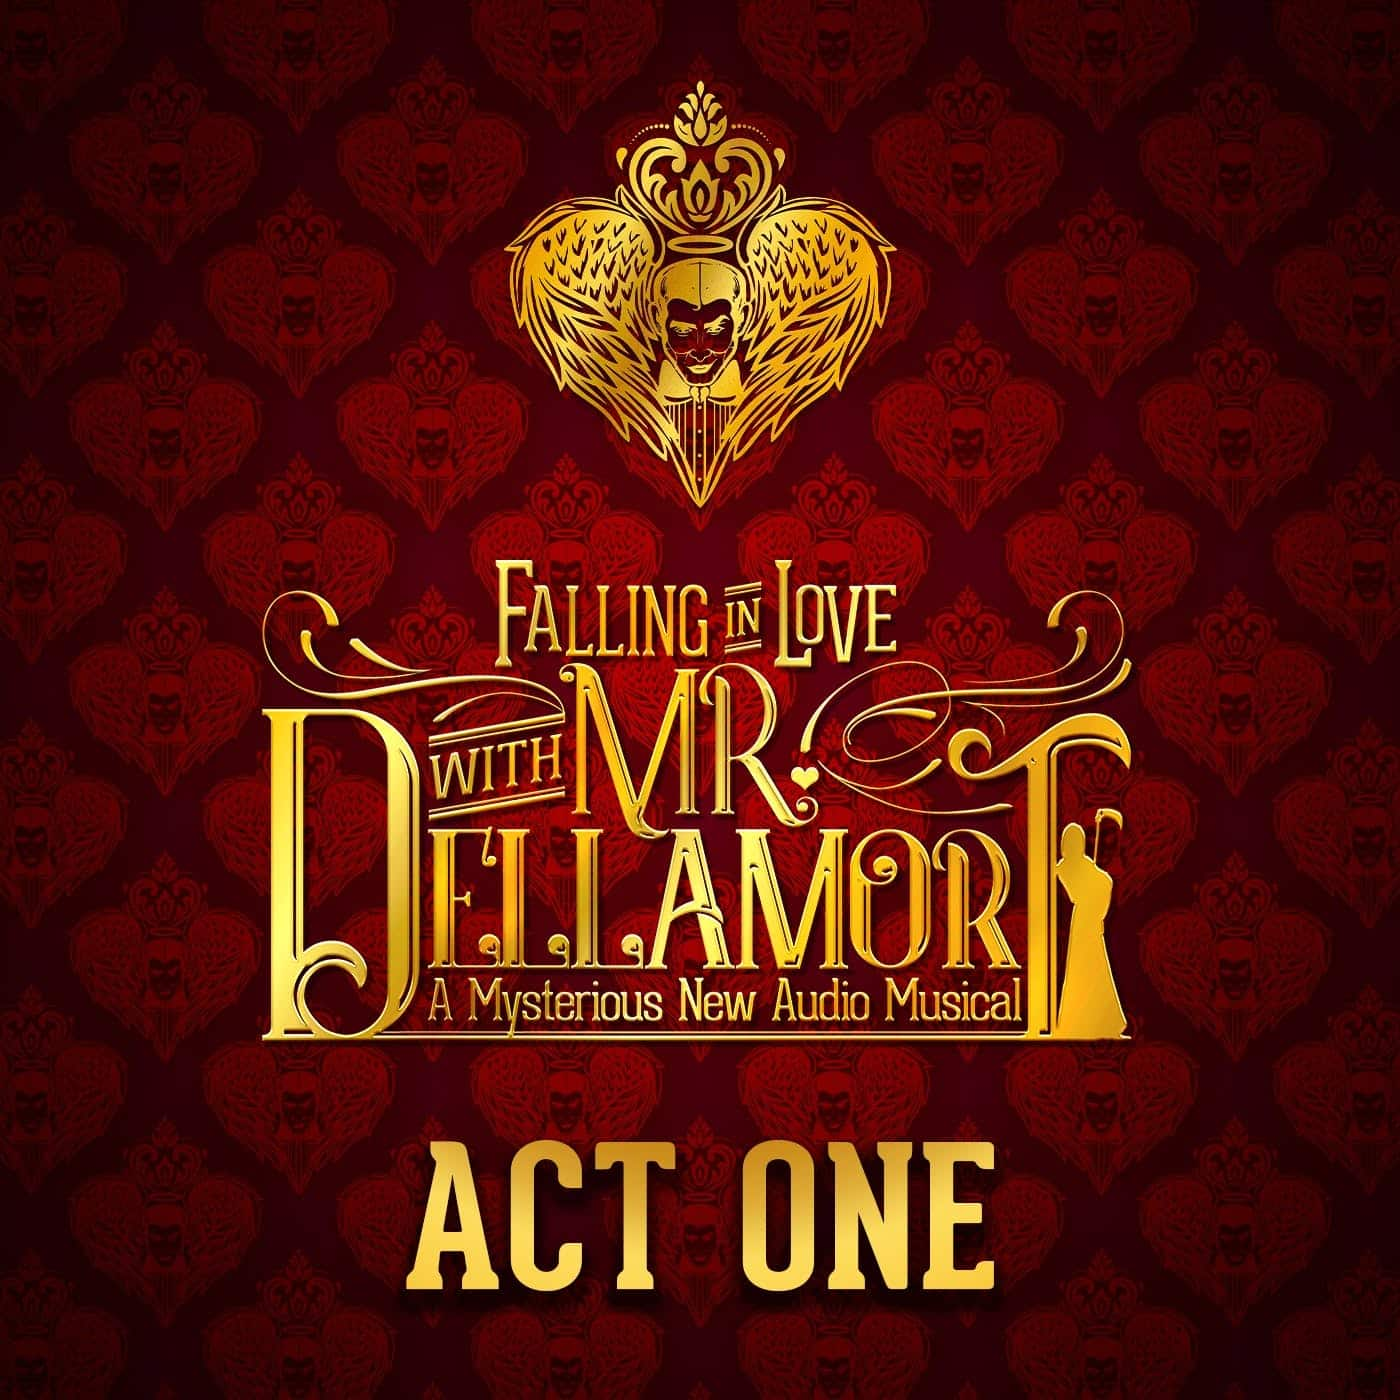 Falling in Love with Mr. Dellamort: Act One